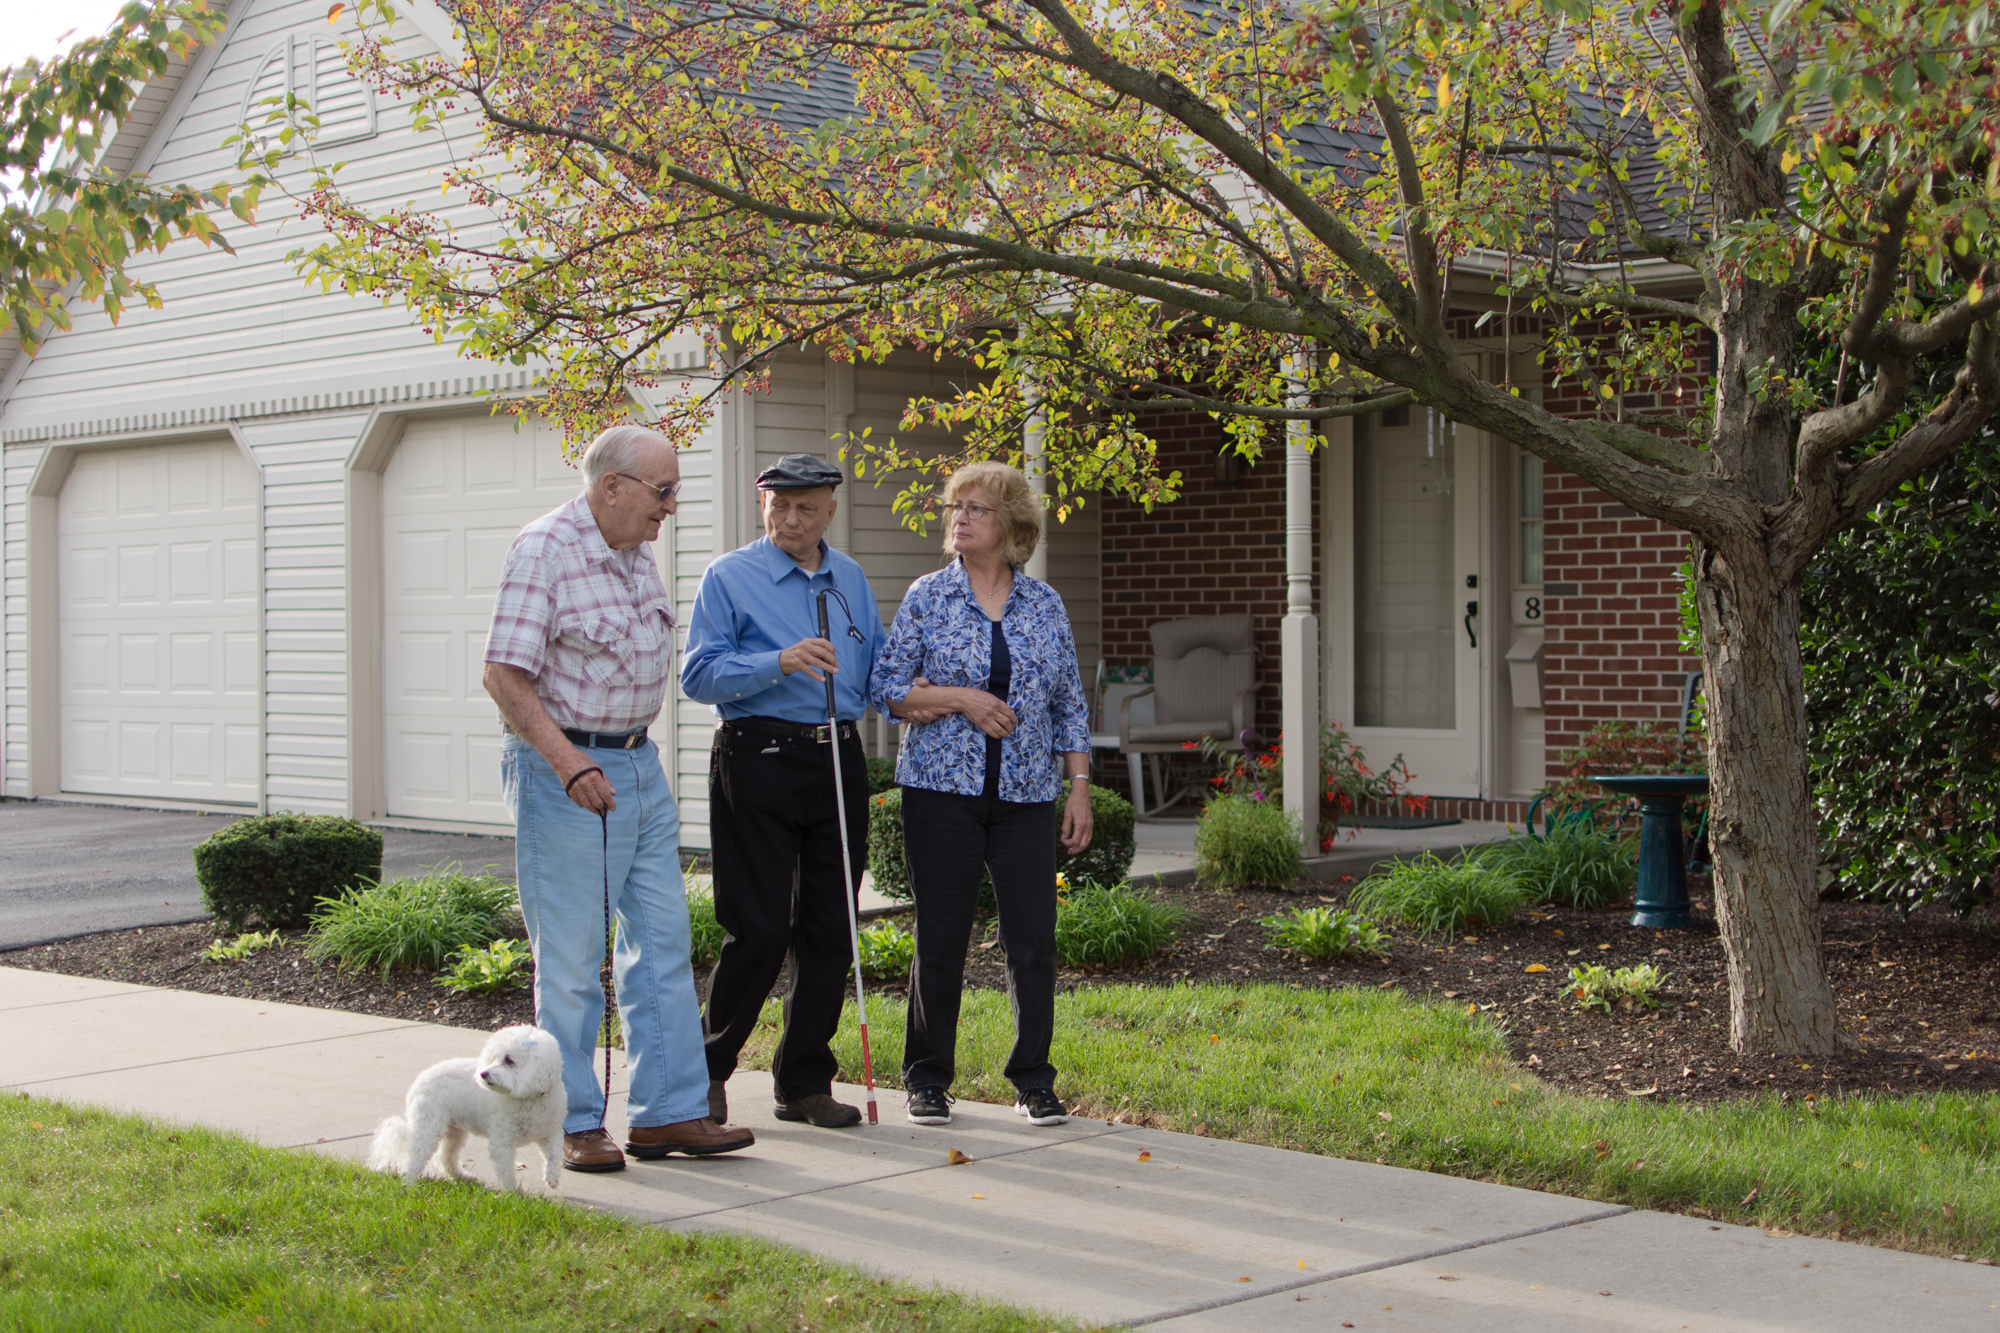 United Zion Retirement Community - Going for a walk